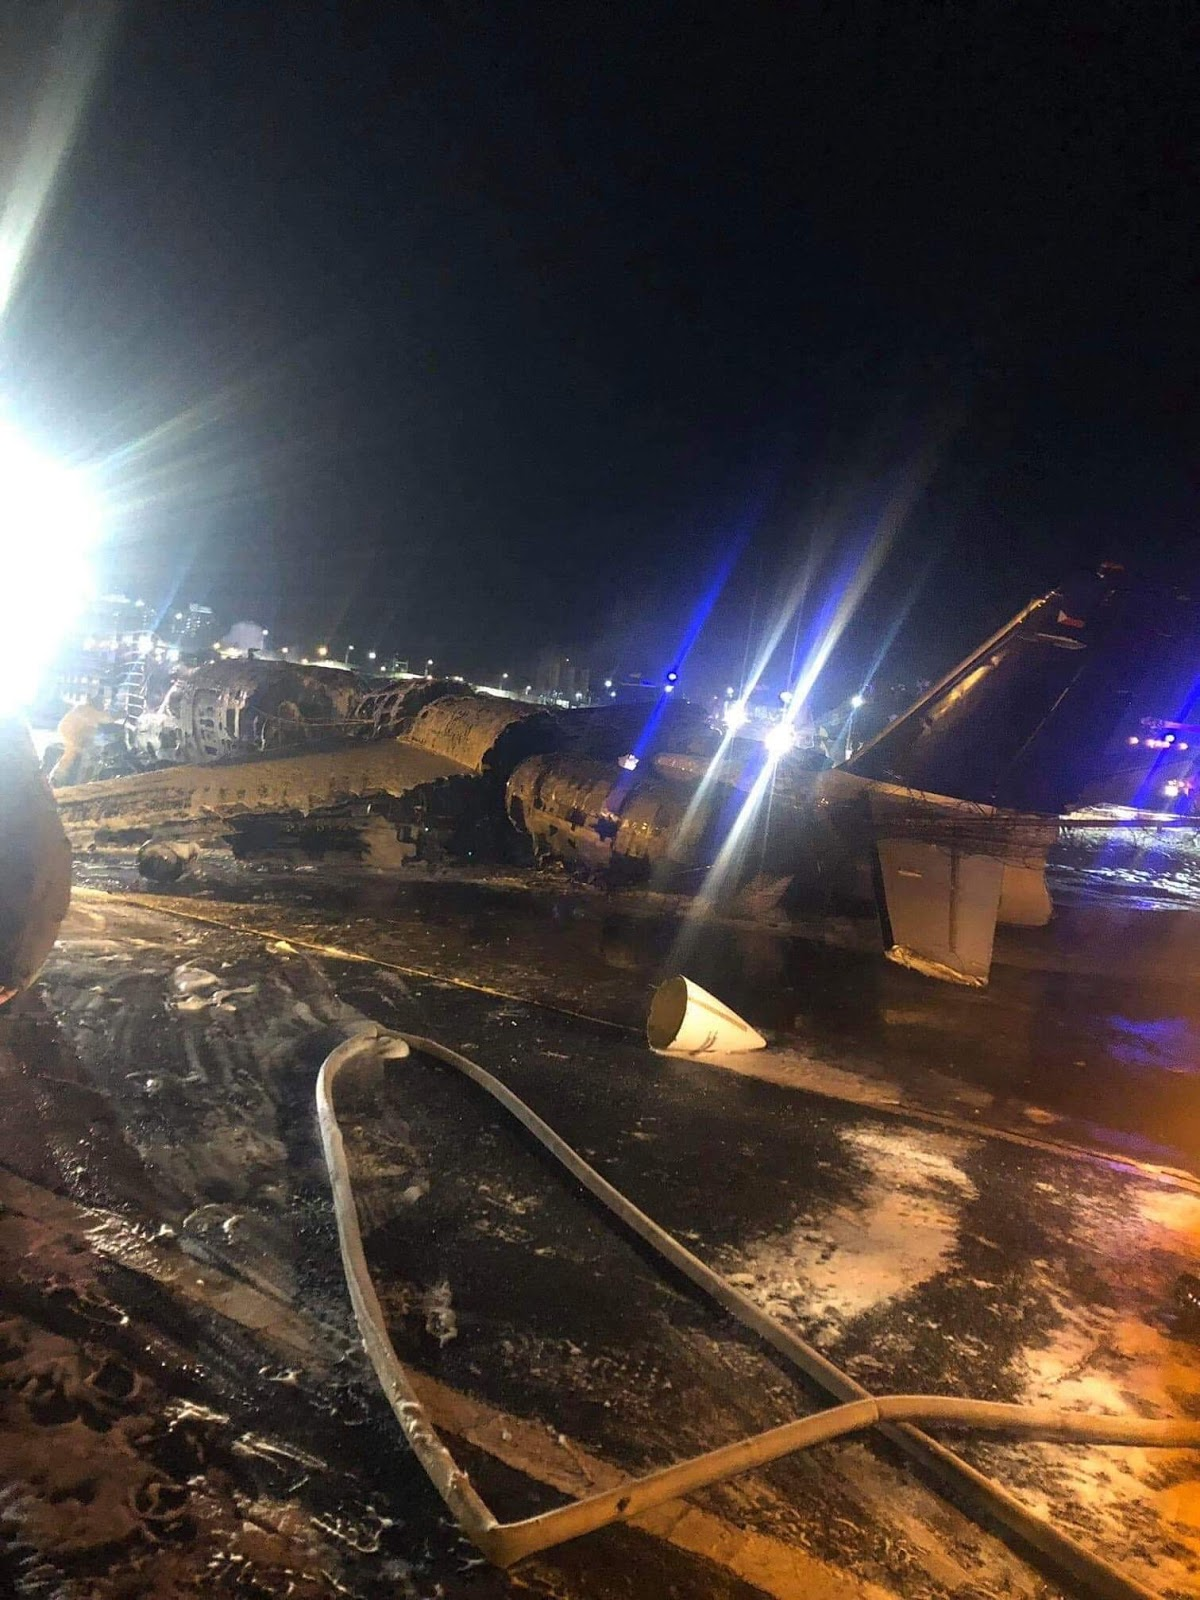 8 People Dead On A Plane Crash In Naia Miaa When In Taiwan